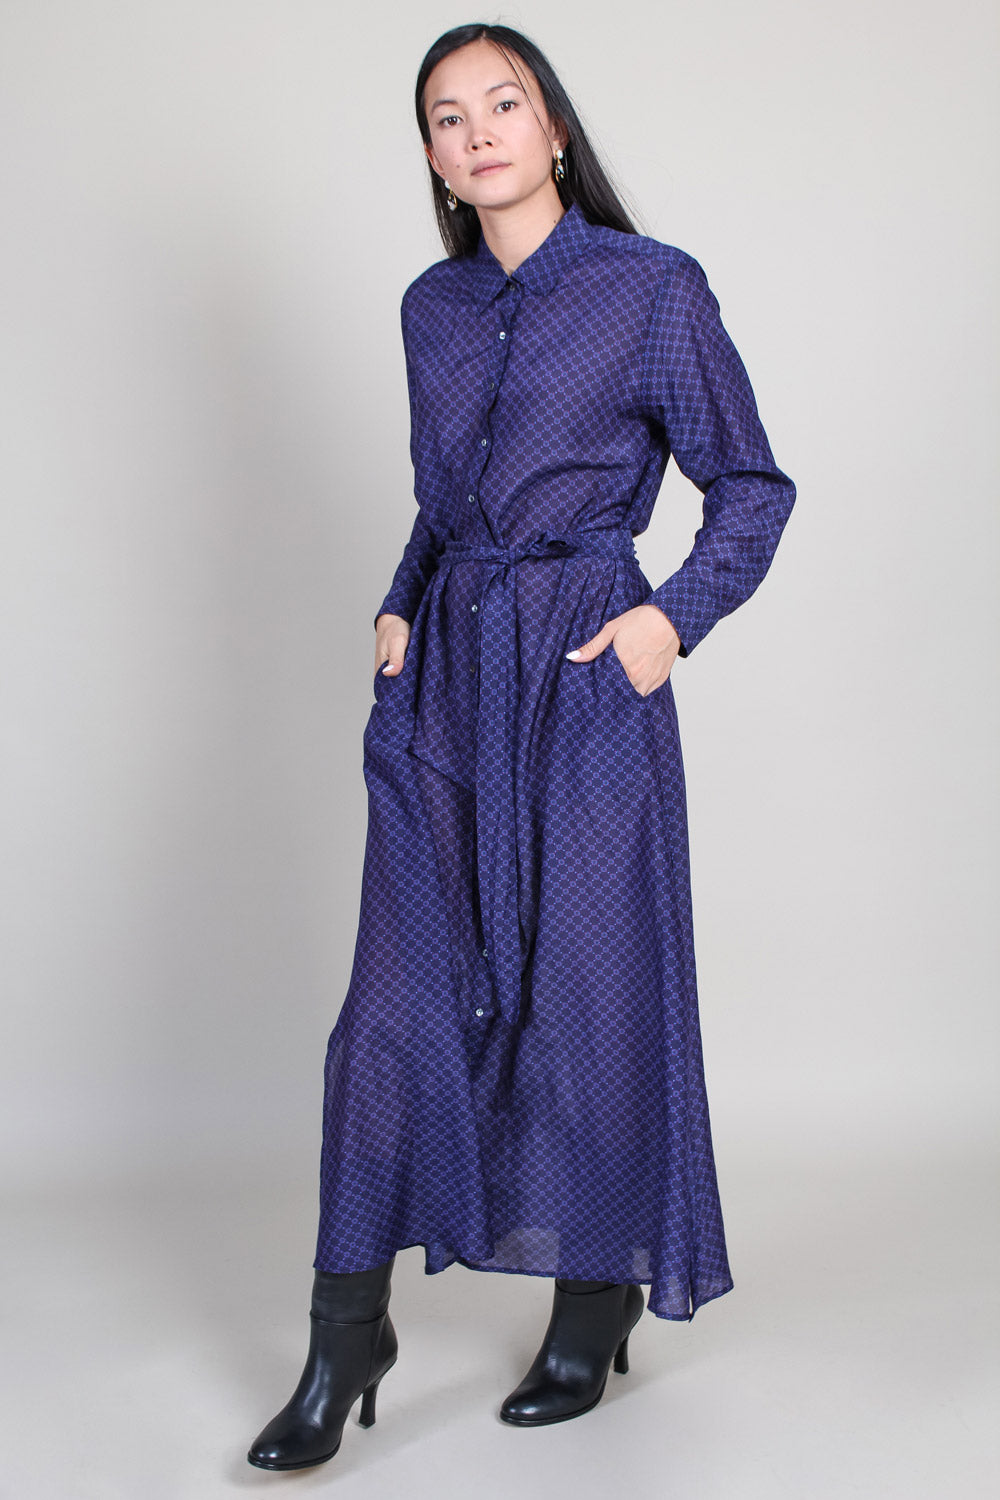 Boden Dress in Agate Blue